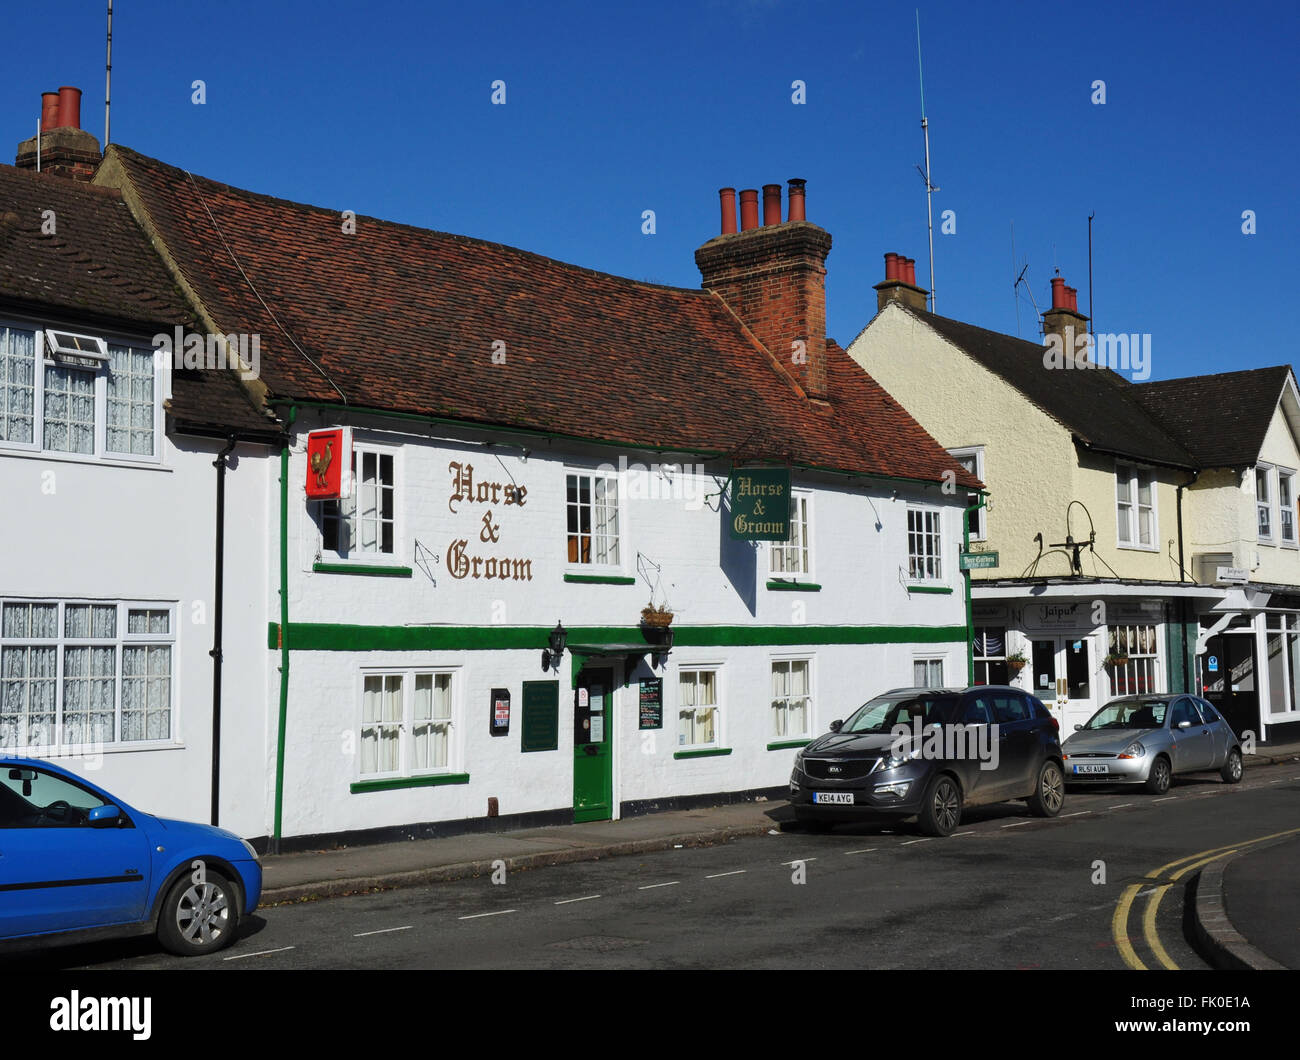 Horse & Groom public house, Park Street, Old Hatfield, Hertfordshire, England, UK - Stock Image